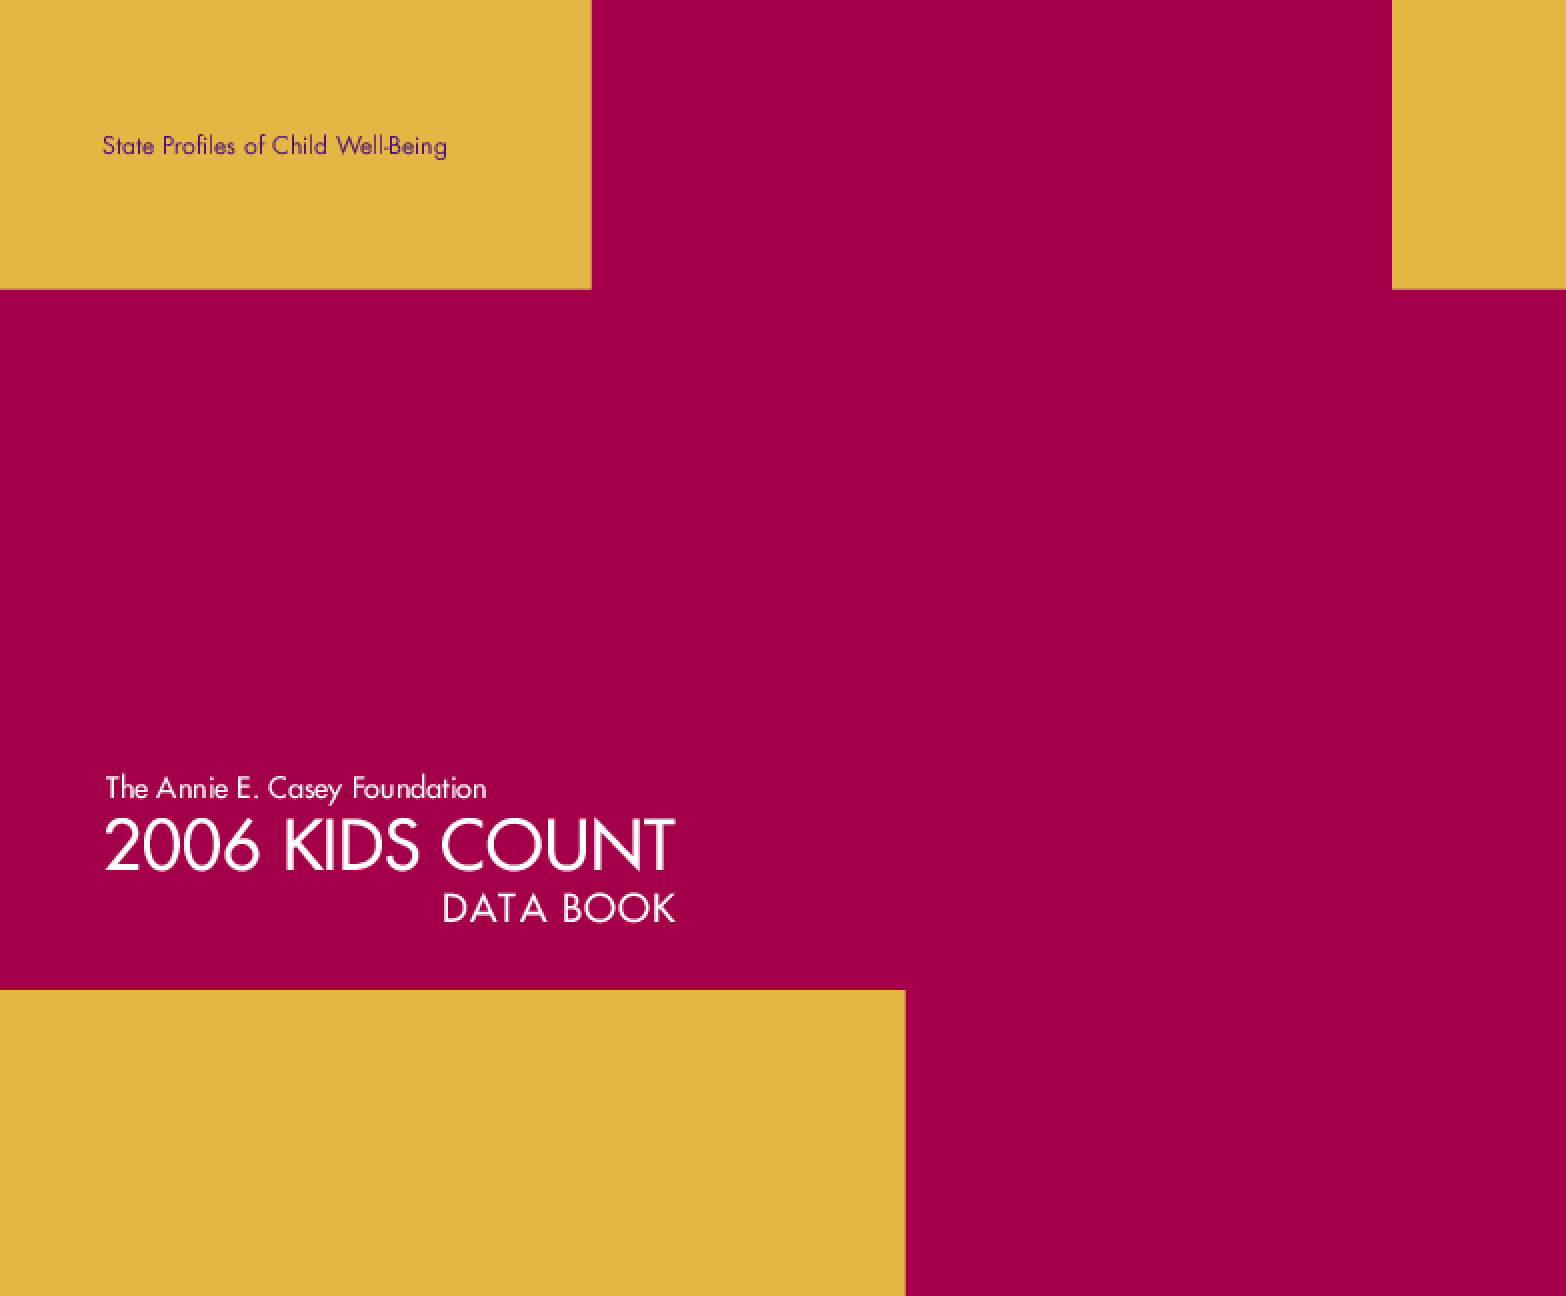 2006 KIDS COUNT Data Book